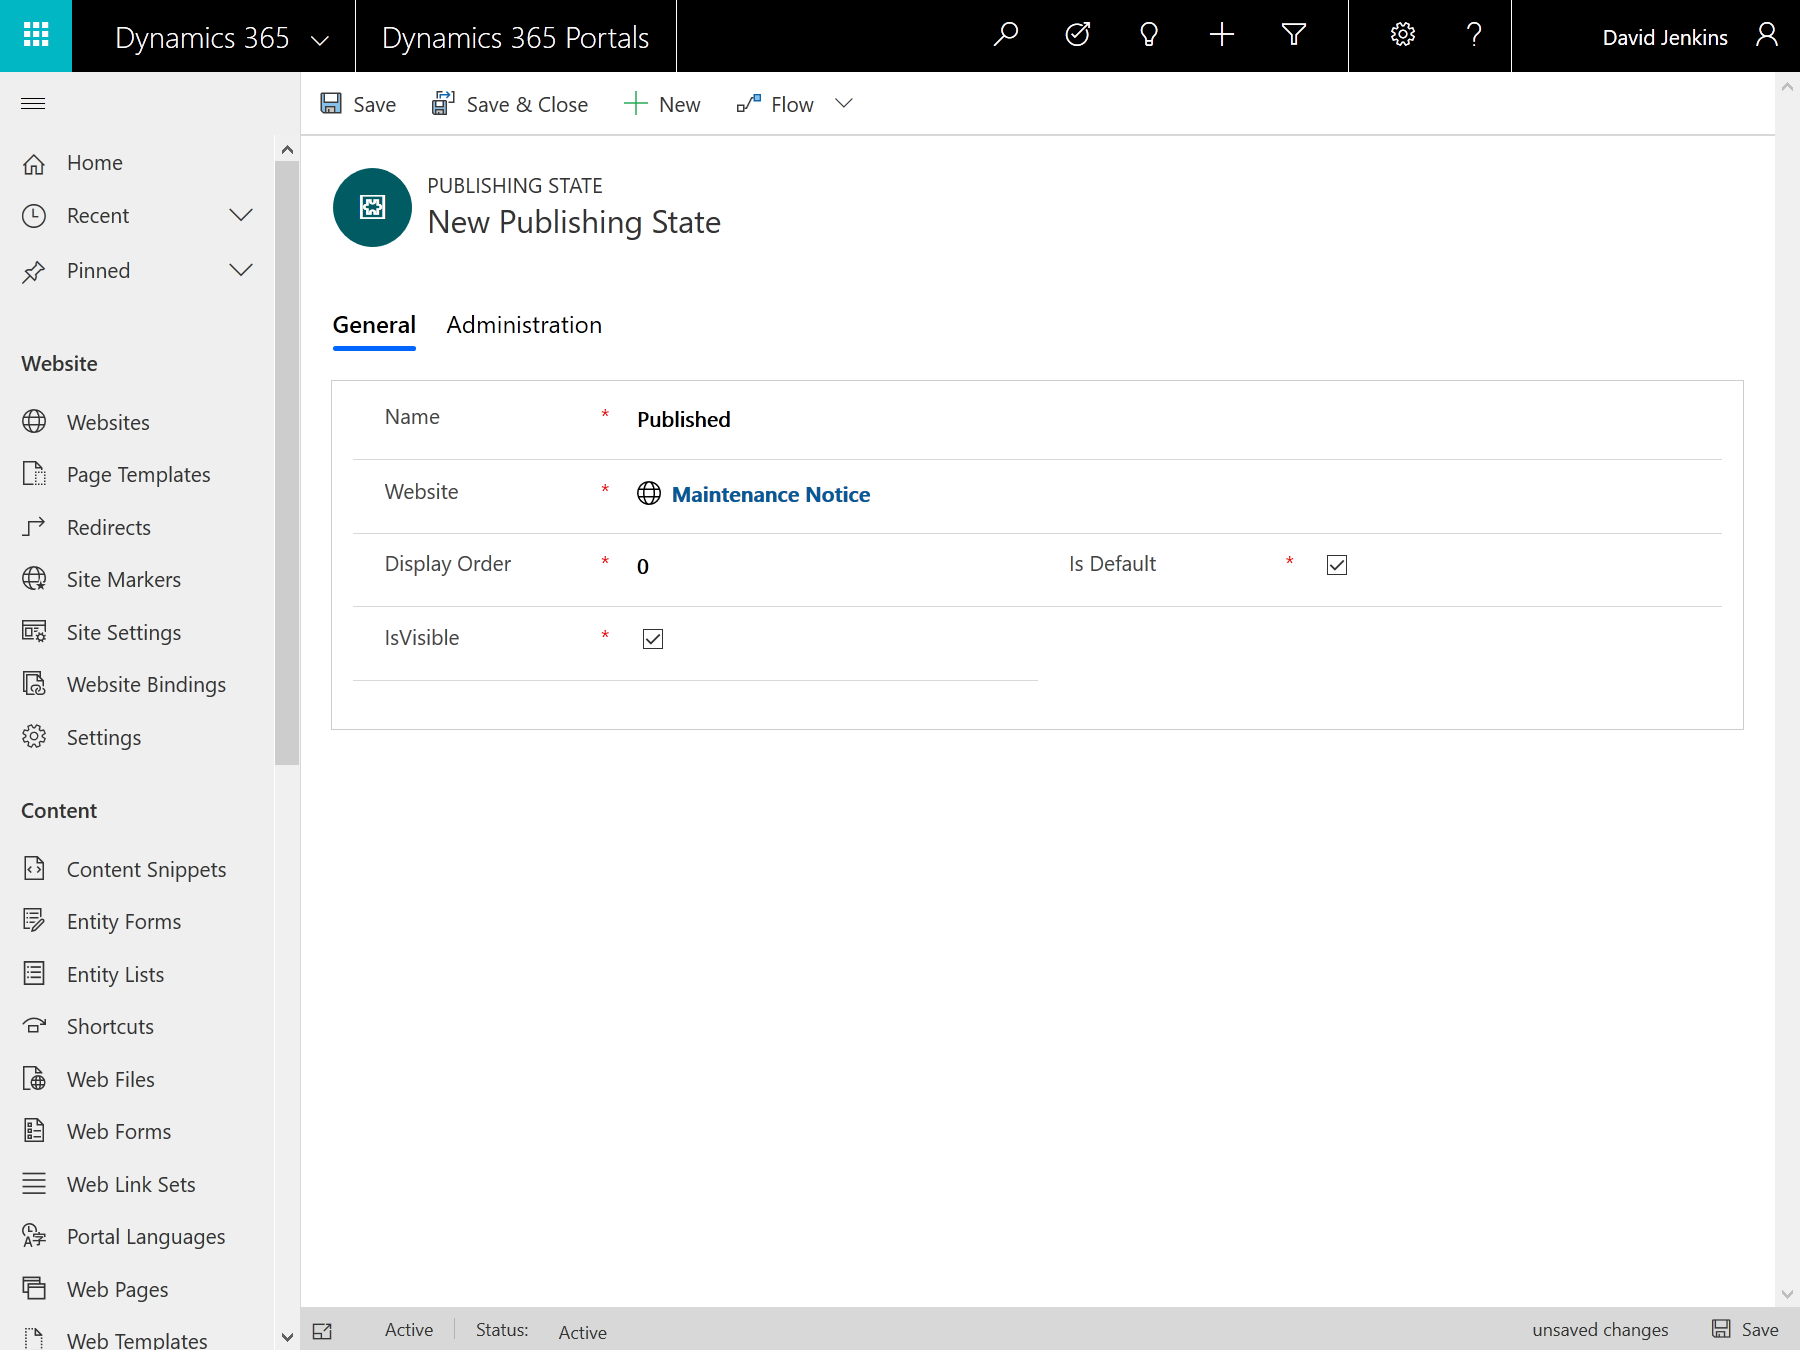 """Under Maintenance"""" pages for Dynamics 365 portals"""